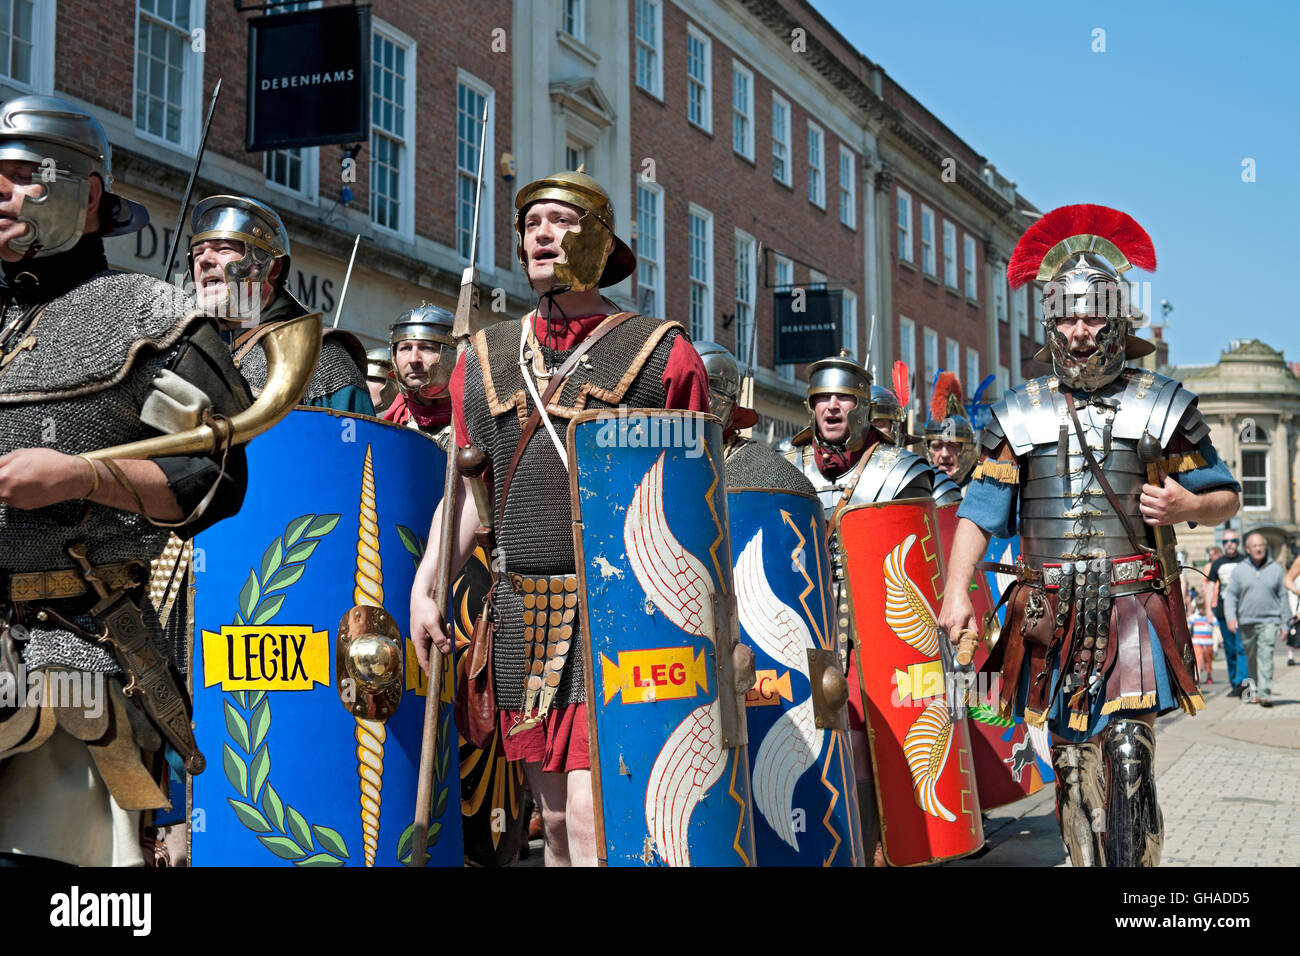 Soldiers marching through the city centre at the Roman Festival York North Yorkshire England UK United Kingdom GB - Stock Image